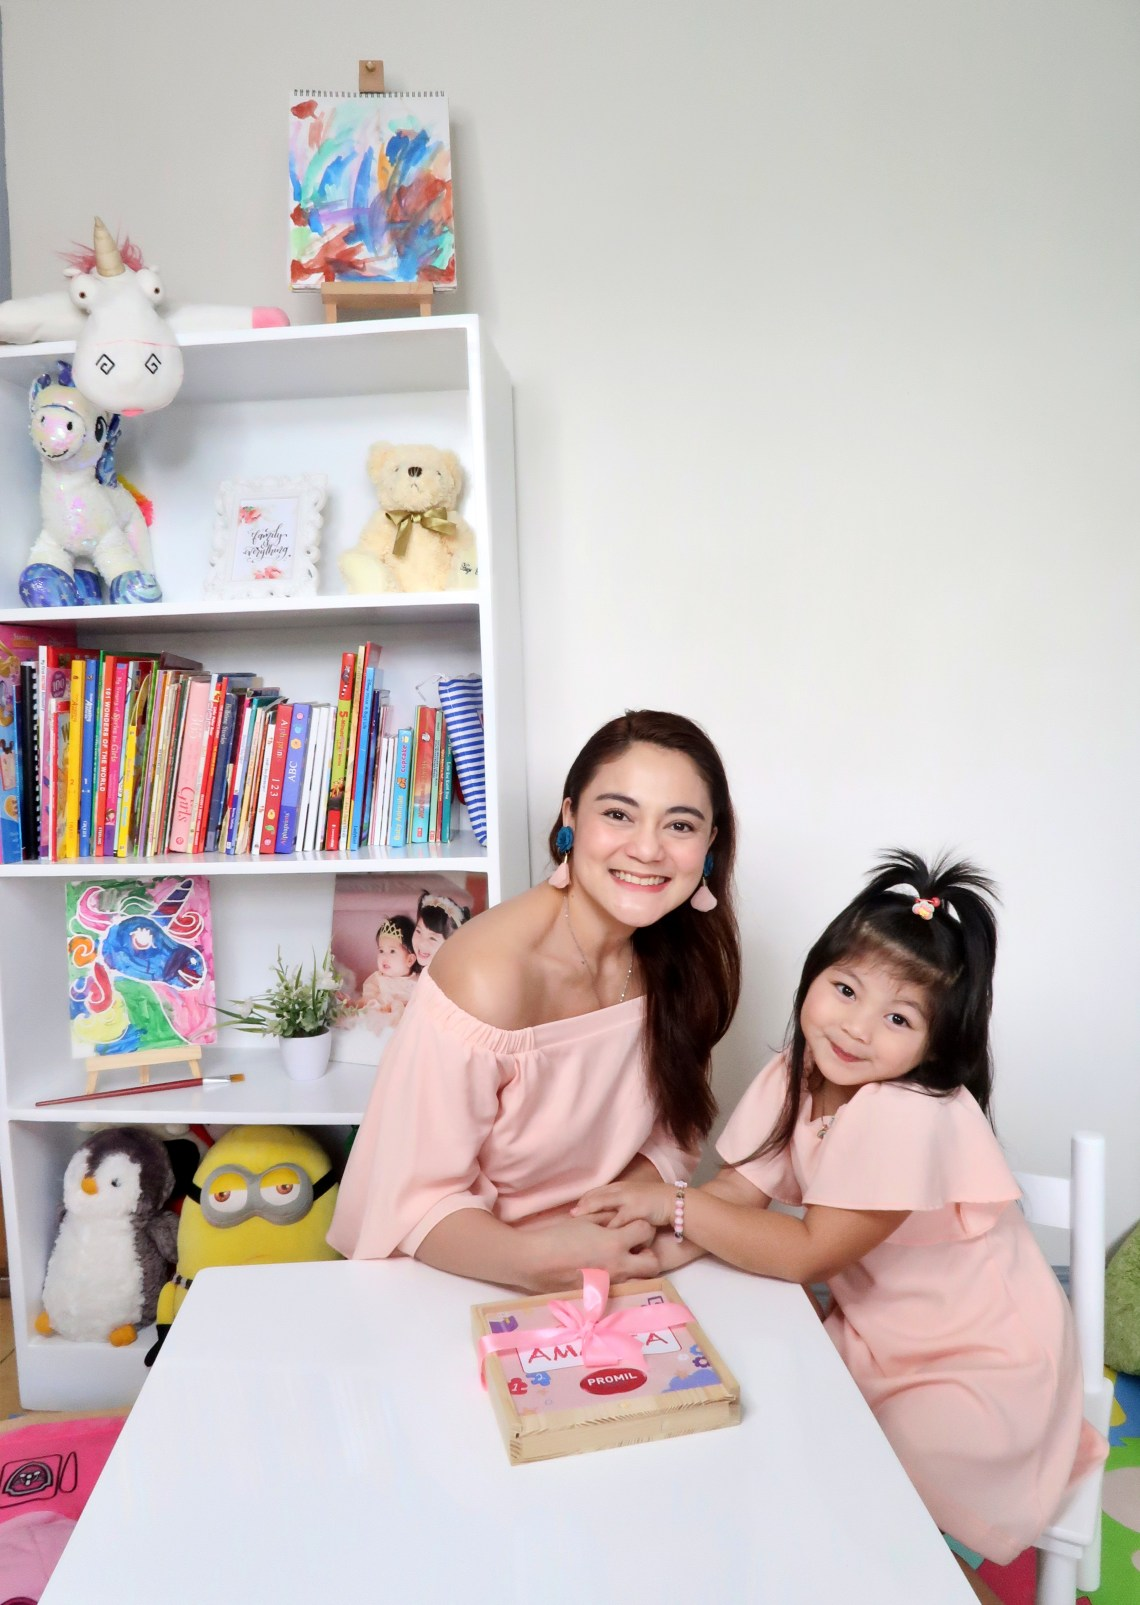 dyosathemomma: How to spot your child's talent - How to nurture child's talent- mommybloggerph